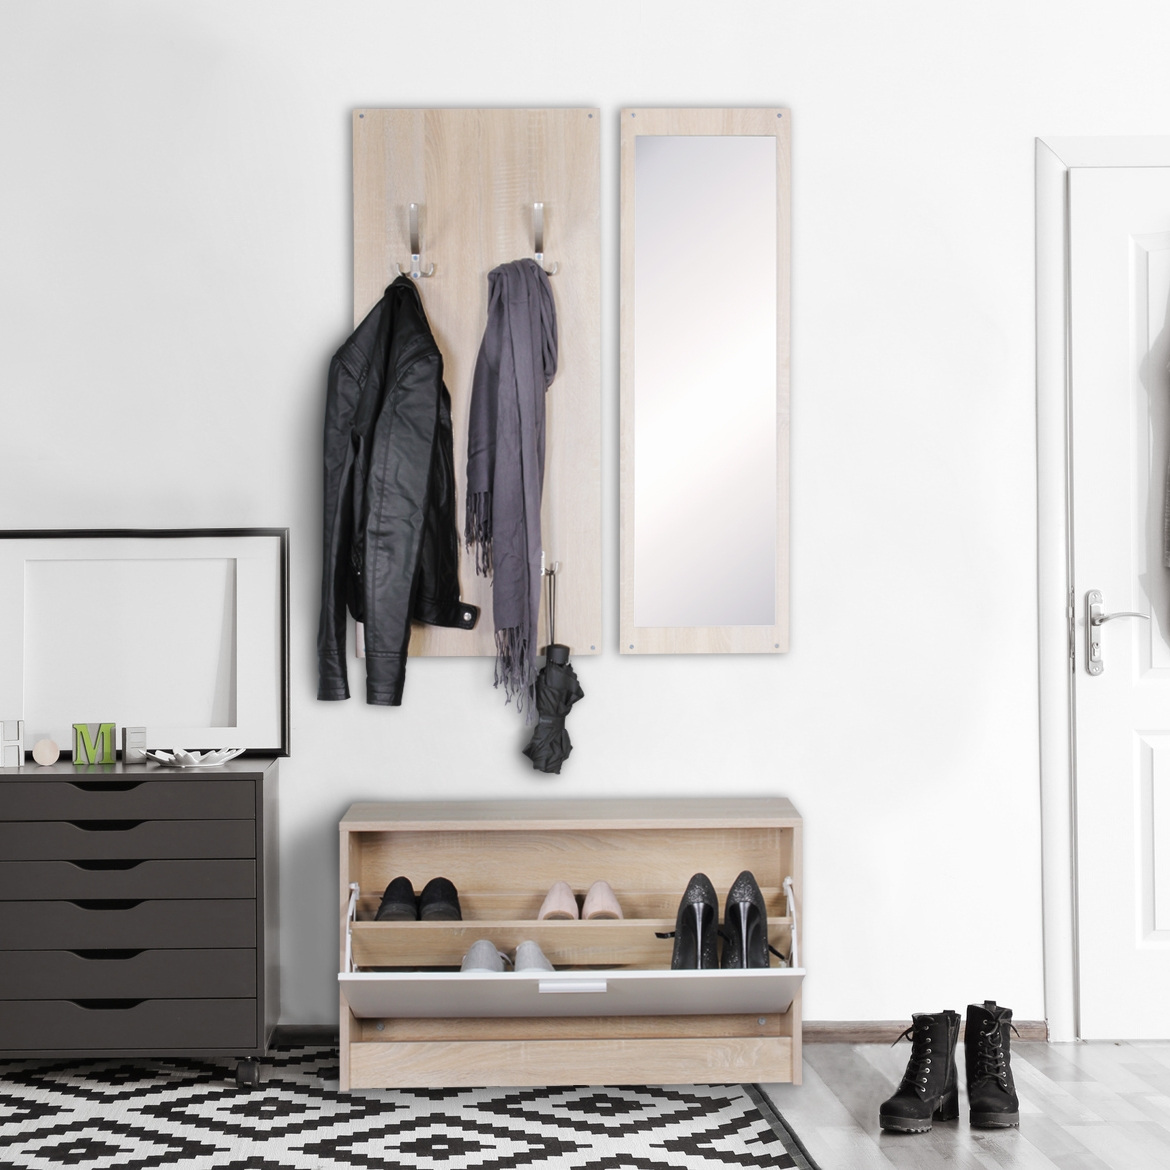 wand garderobe jan mit garderobenpaneel spiegel schuhkipper 80 cm breit 27 cm schmal. Black Bedroom Furniture Sets. Home Design Ideas